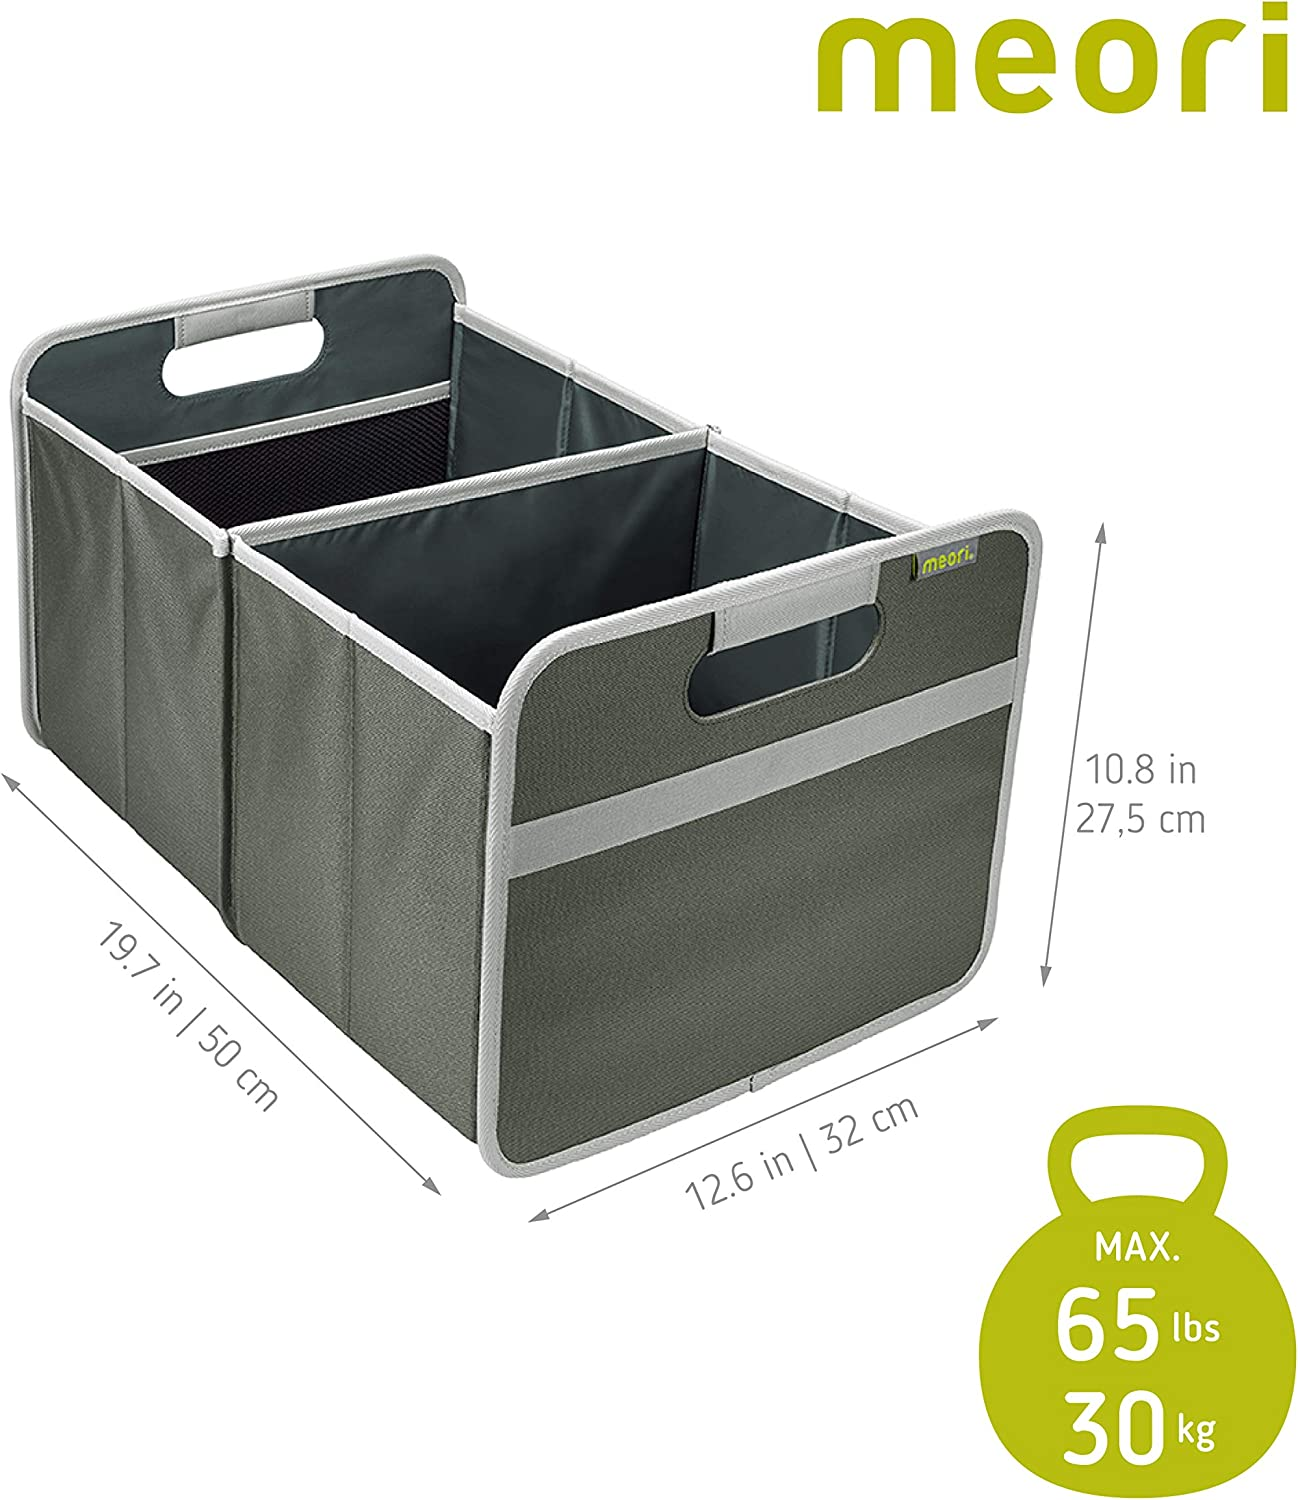 1-Pack meori Lava Black with Dots Foldable Box Large Collapsible Basket Trunk Organizer Camping Yoga Equipment Transport Storage